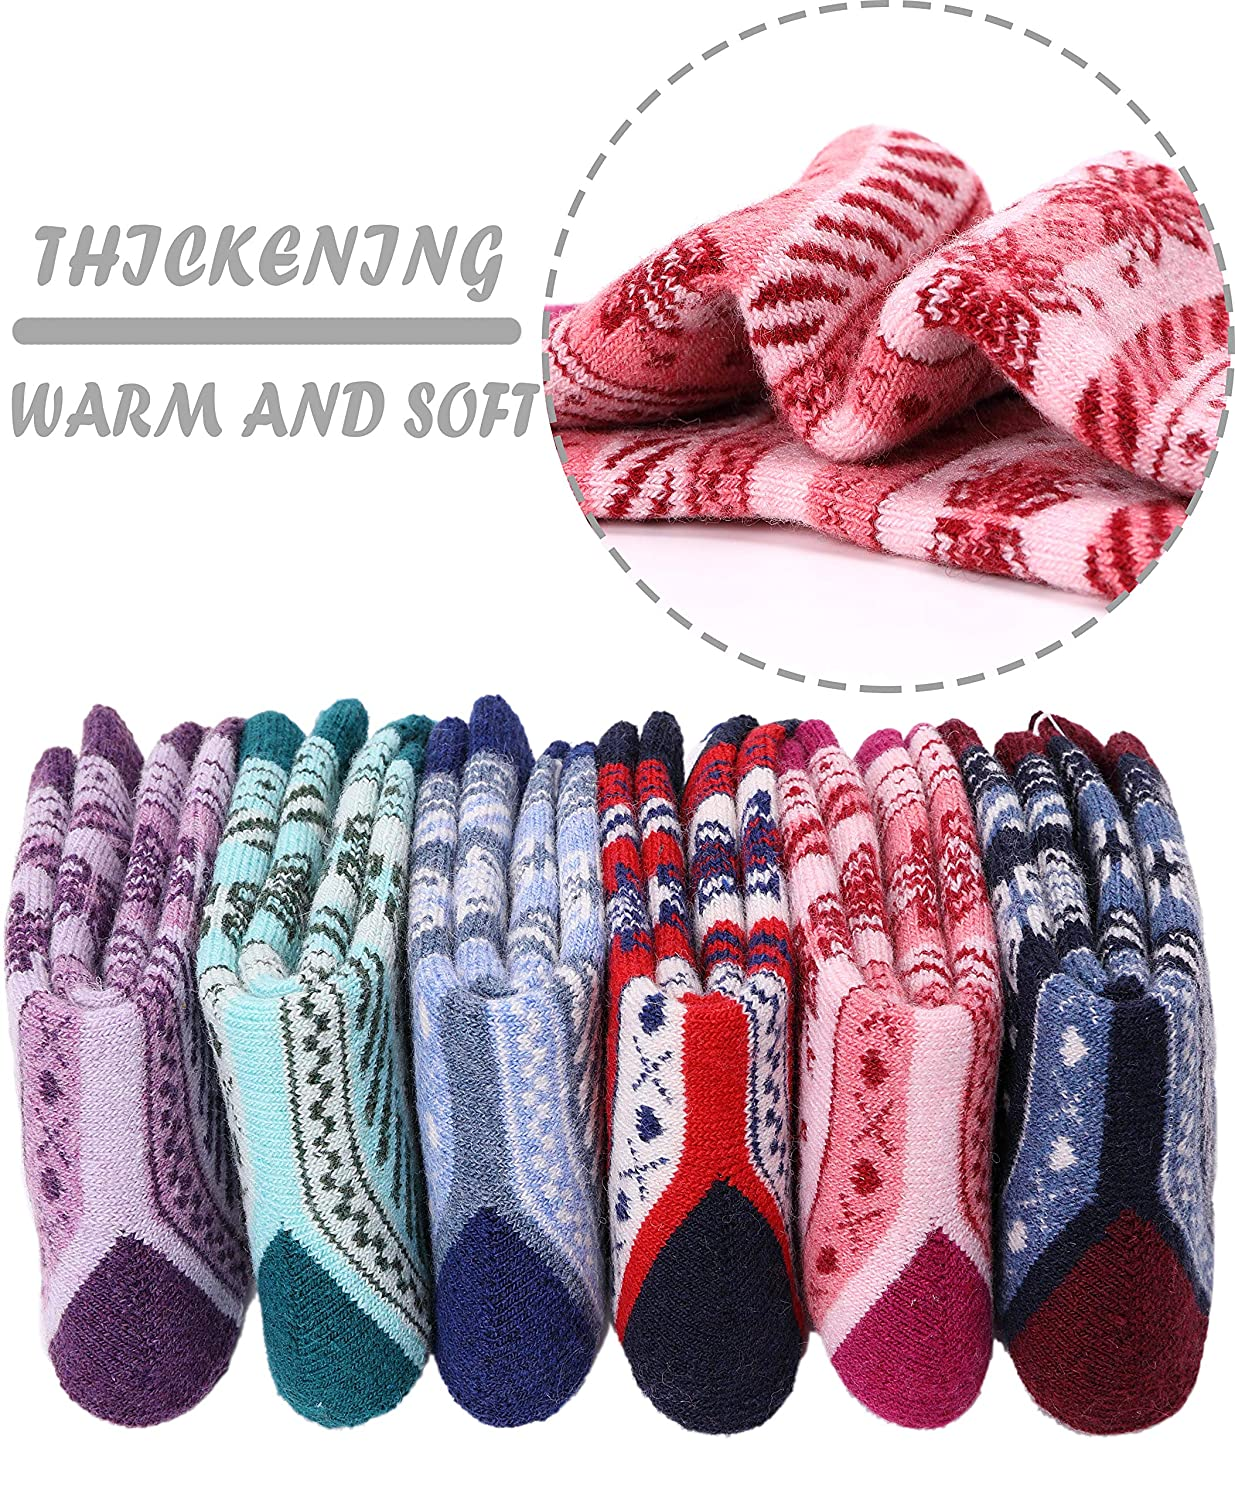 Christmas Snowflake Kids Wool Socks For Boy Girl Kid Thick Thermal Warm Cotton Winter Crew Socks 6 Pack